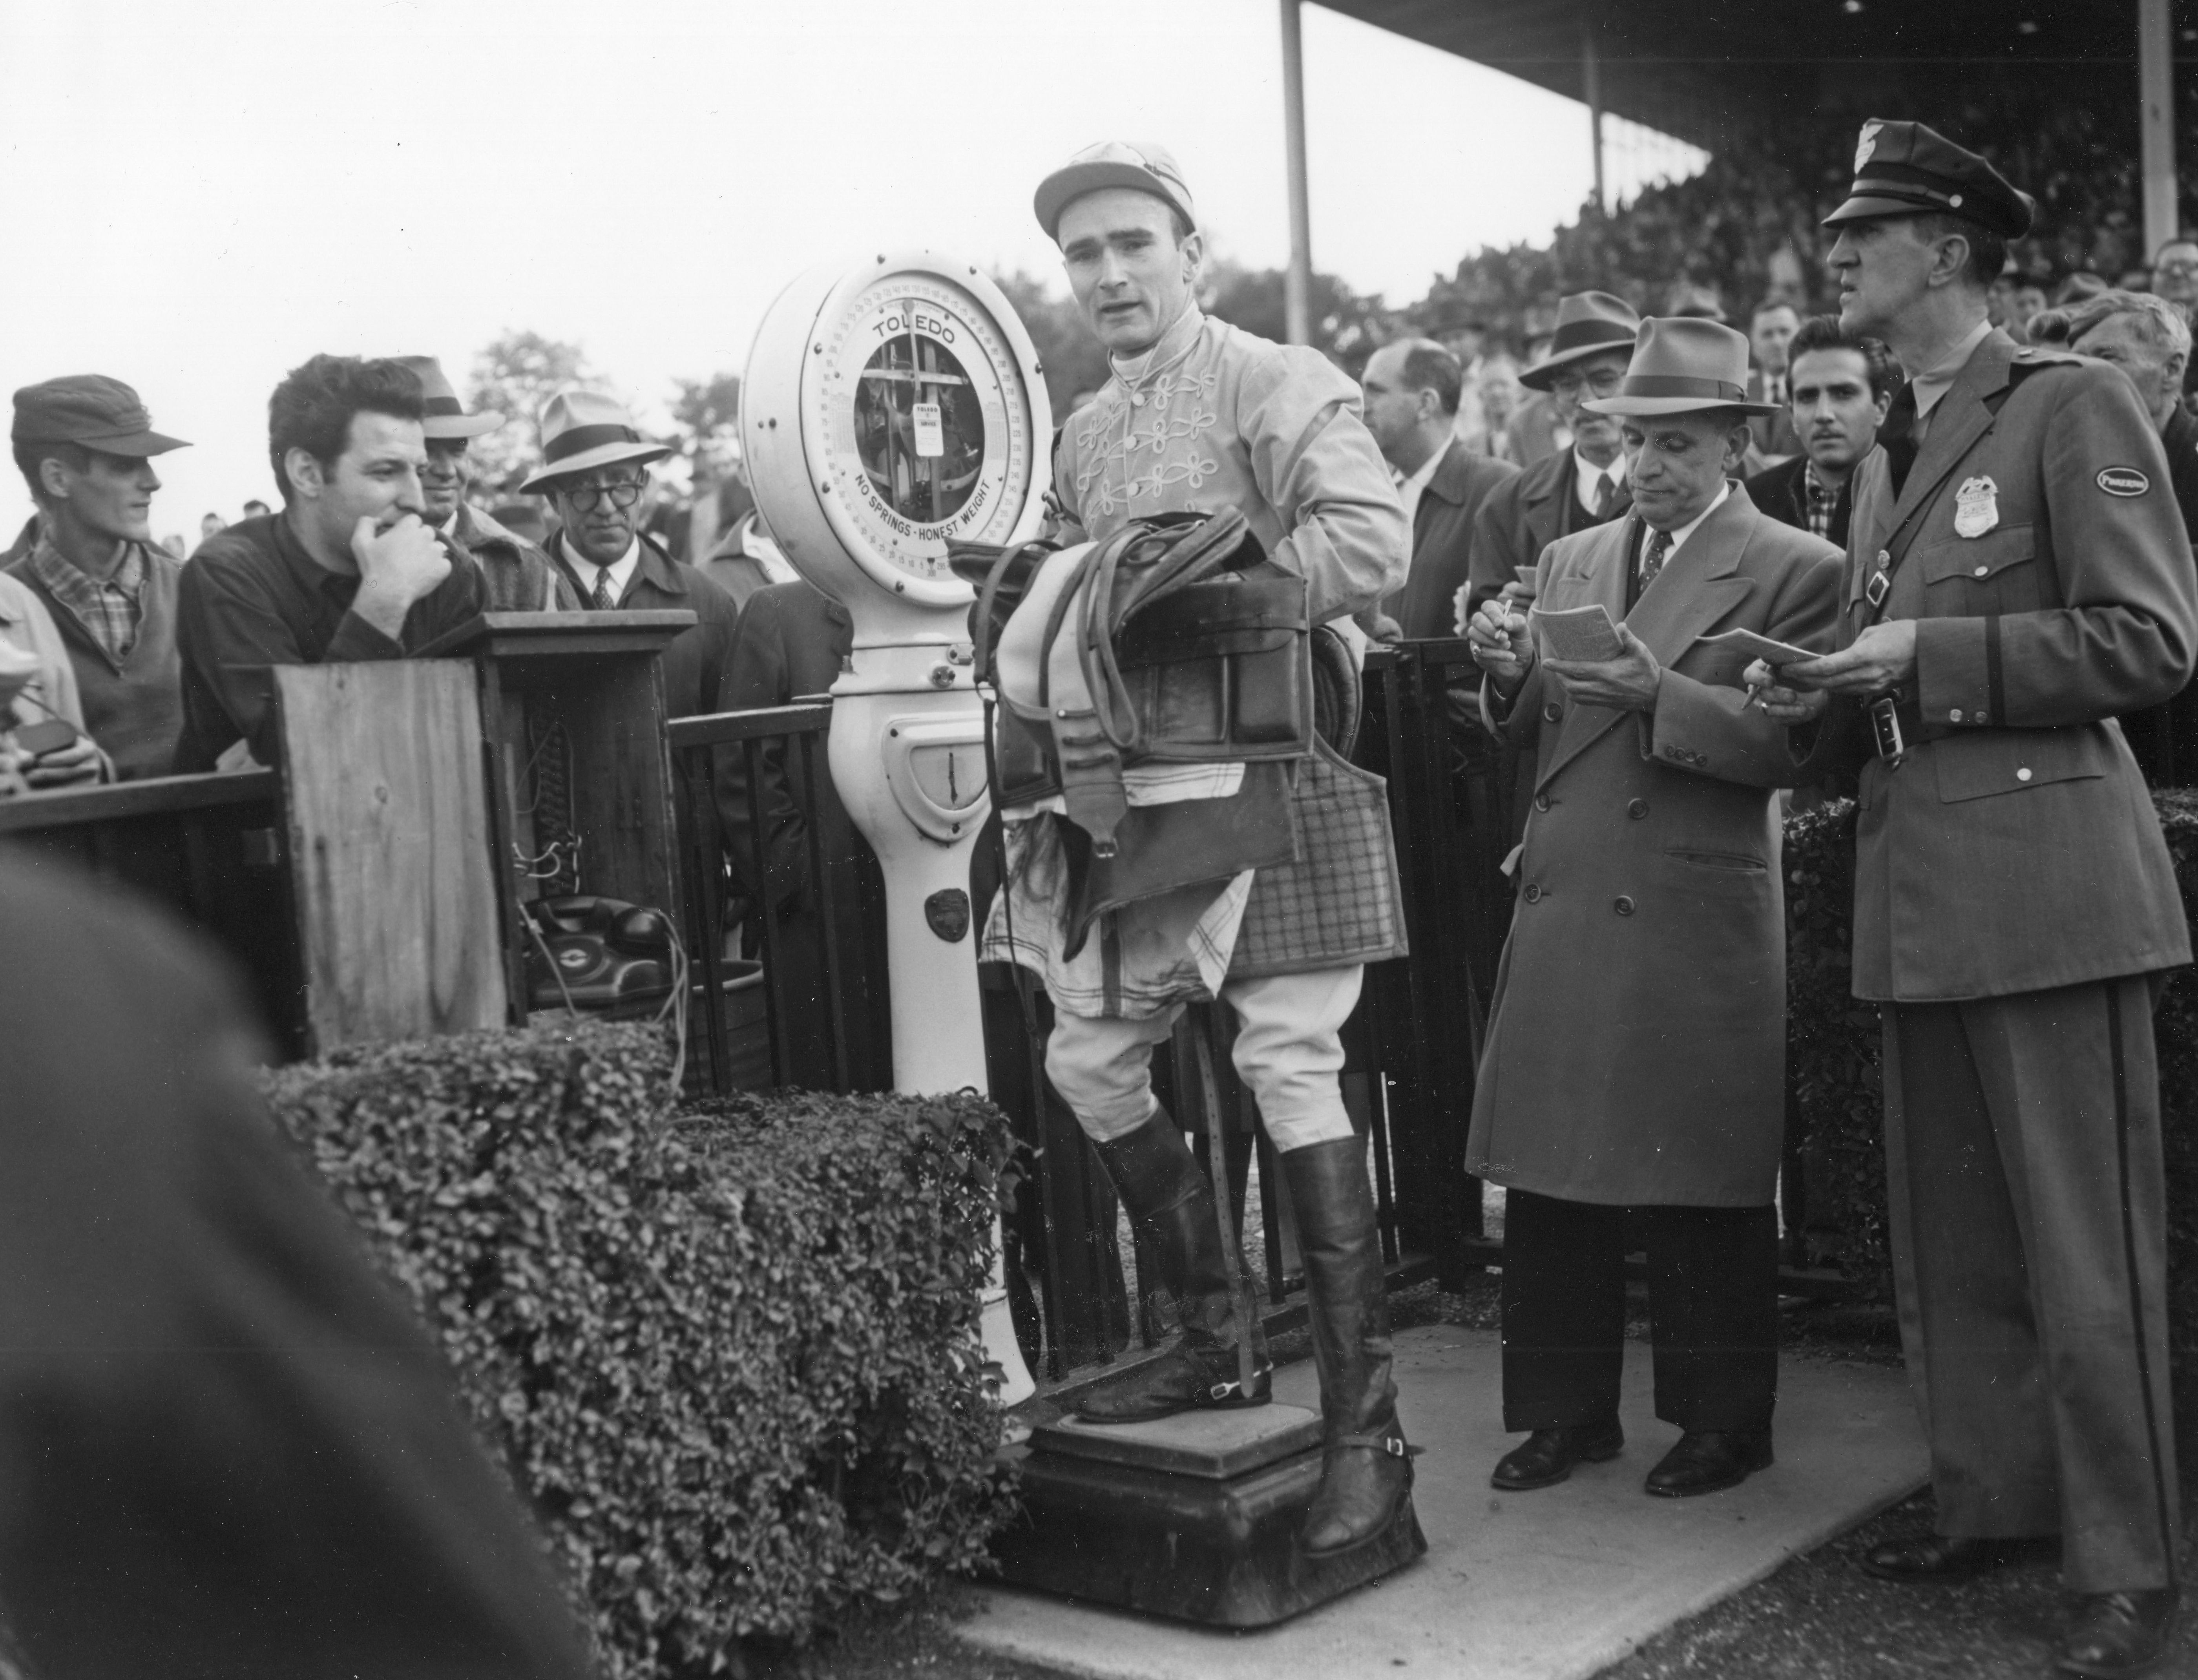 Frank Dooley Adams weighing in after a race at Belmont Park, October 1955 (Keeneland Library Morgan Collection/Museum Collection)